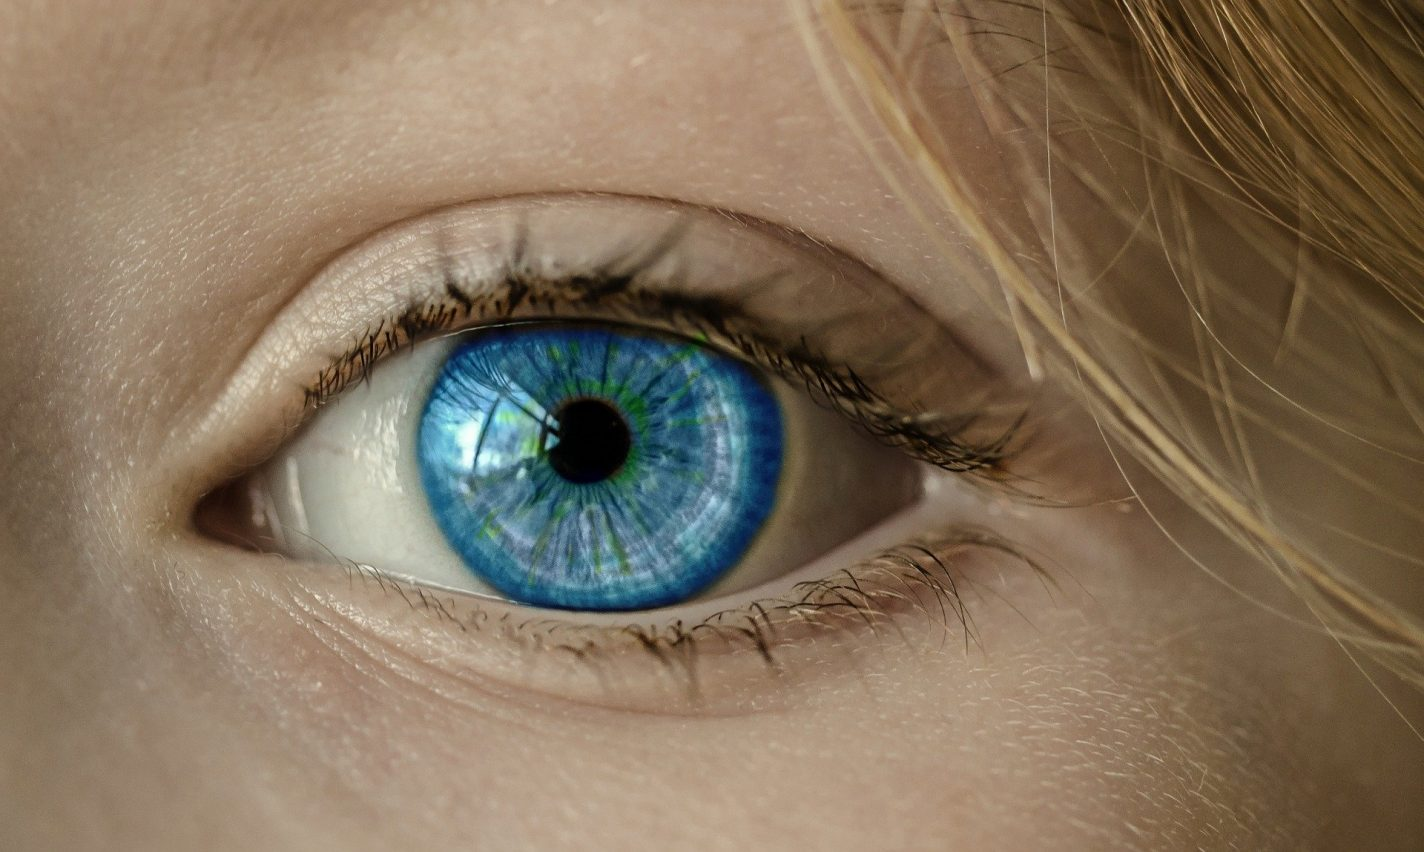 This shows a lady's blue eye